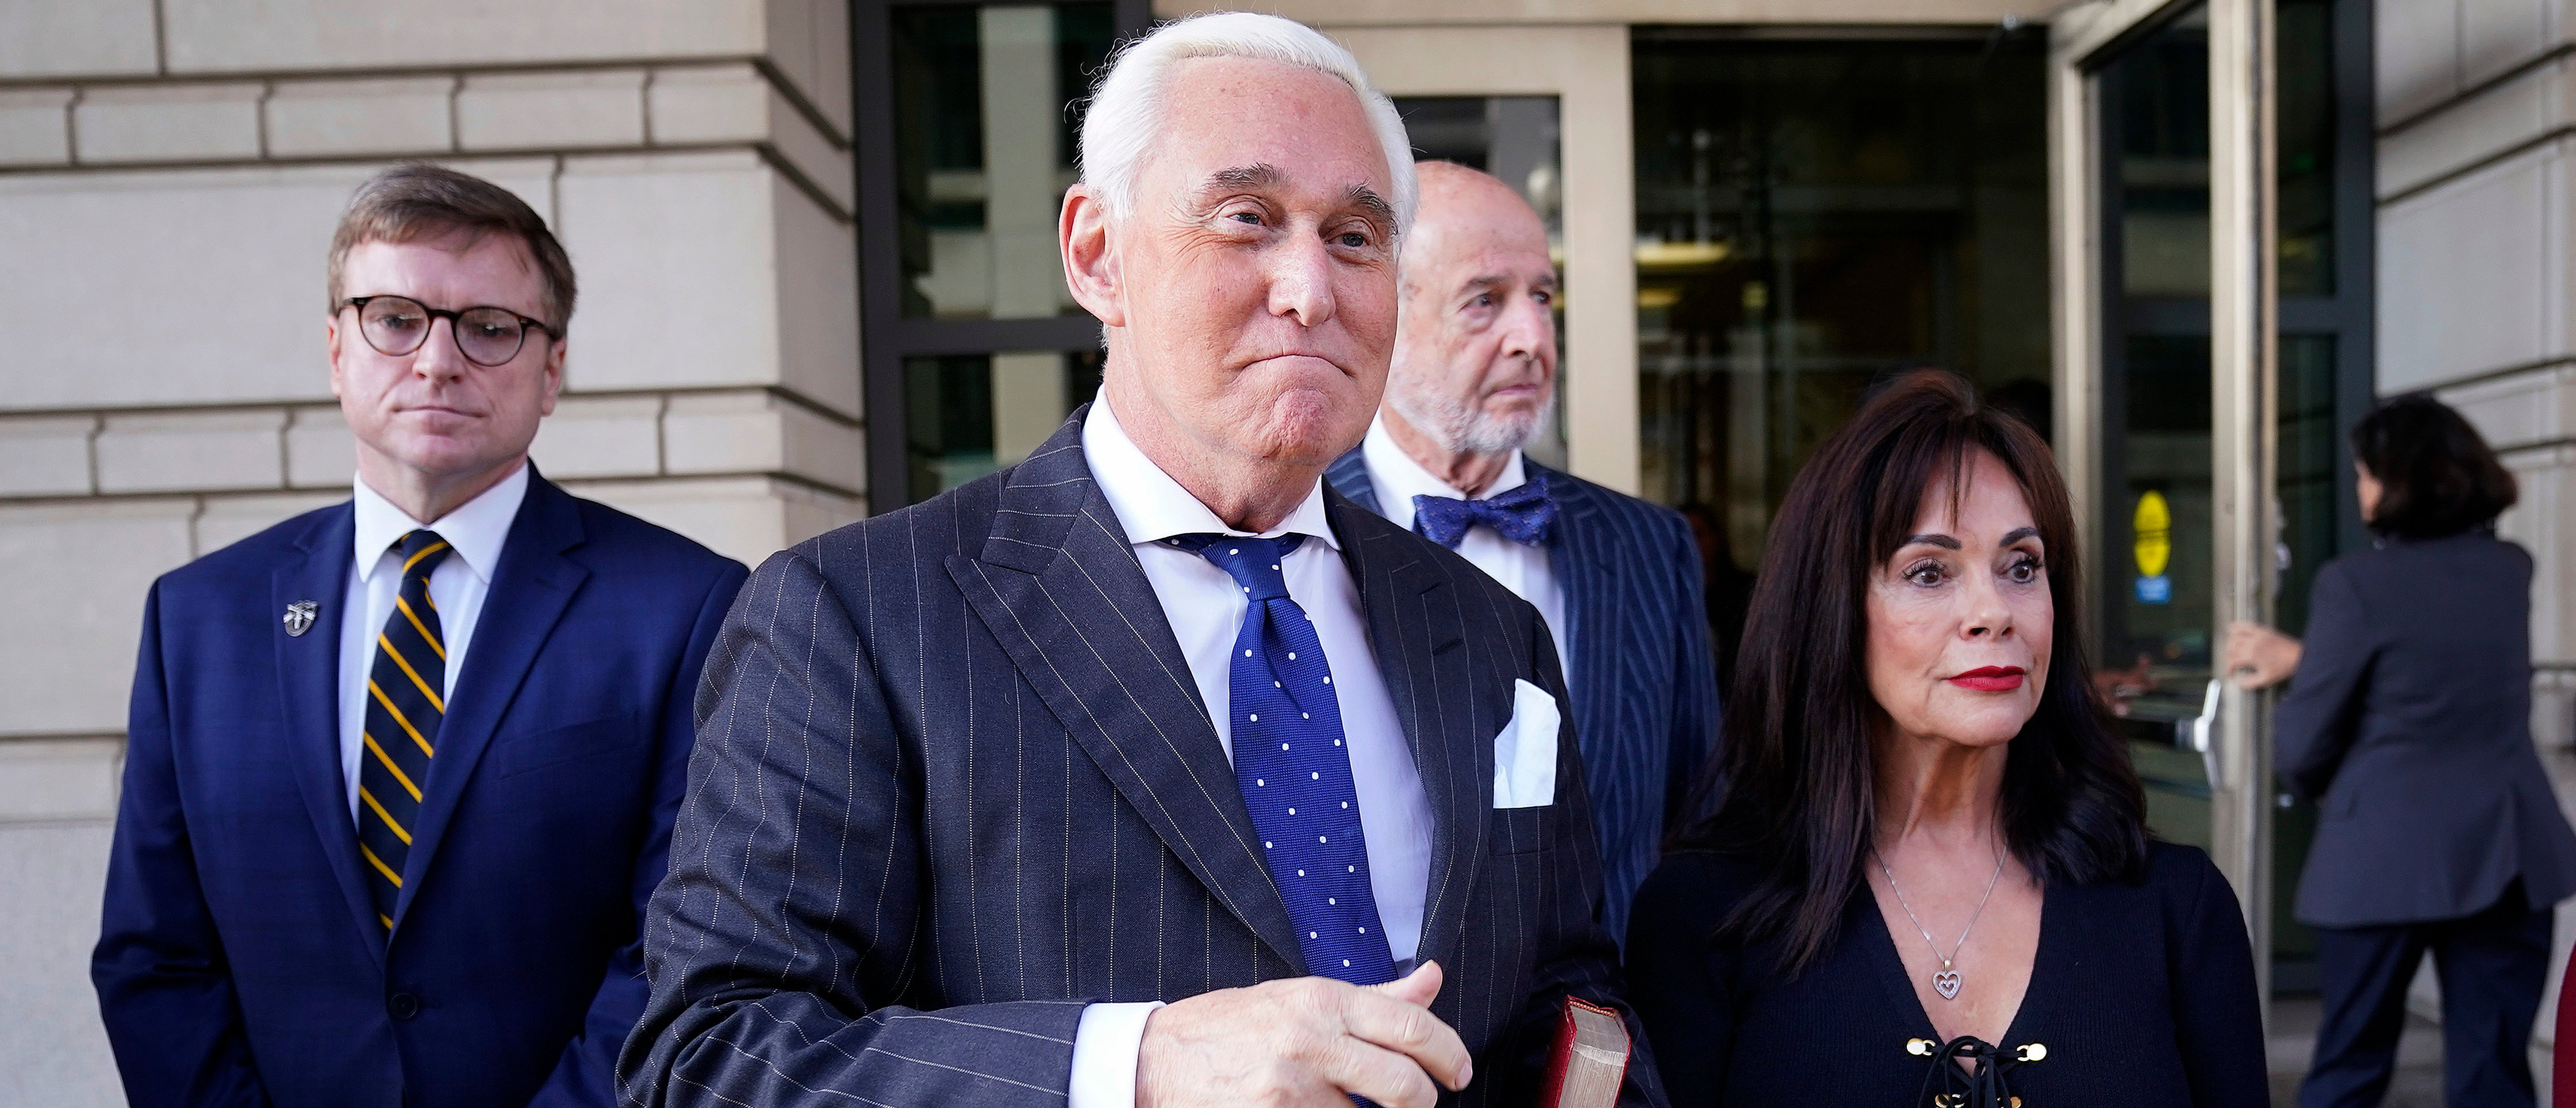 Former advisor to U.S. President Donald Trump, Roger Stone (2nd L), departs the E. Barrett Prettyman United States Courthouse with his wife Nydia (R) after being found guilty of obstructing a congressional investigation into Russia's interference in the 2016 election on November 15, 2019 in Washington, DC. (Win McNamee/Getty Images)